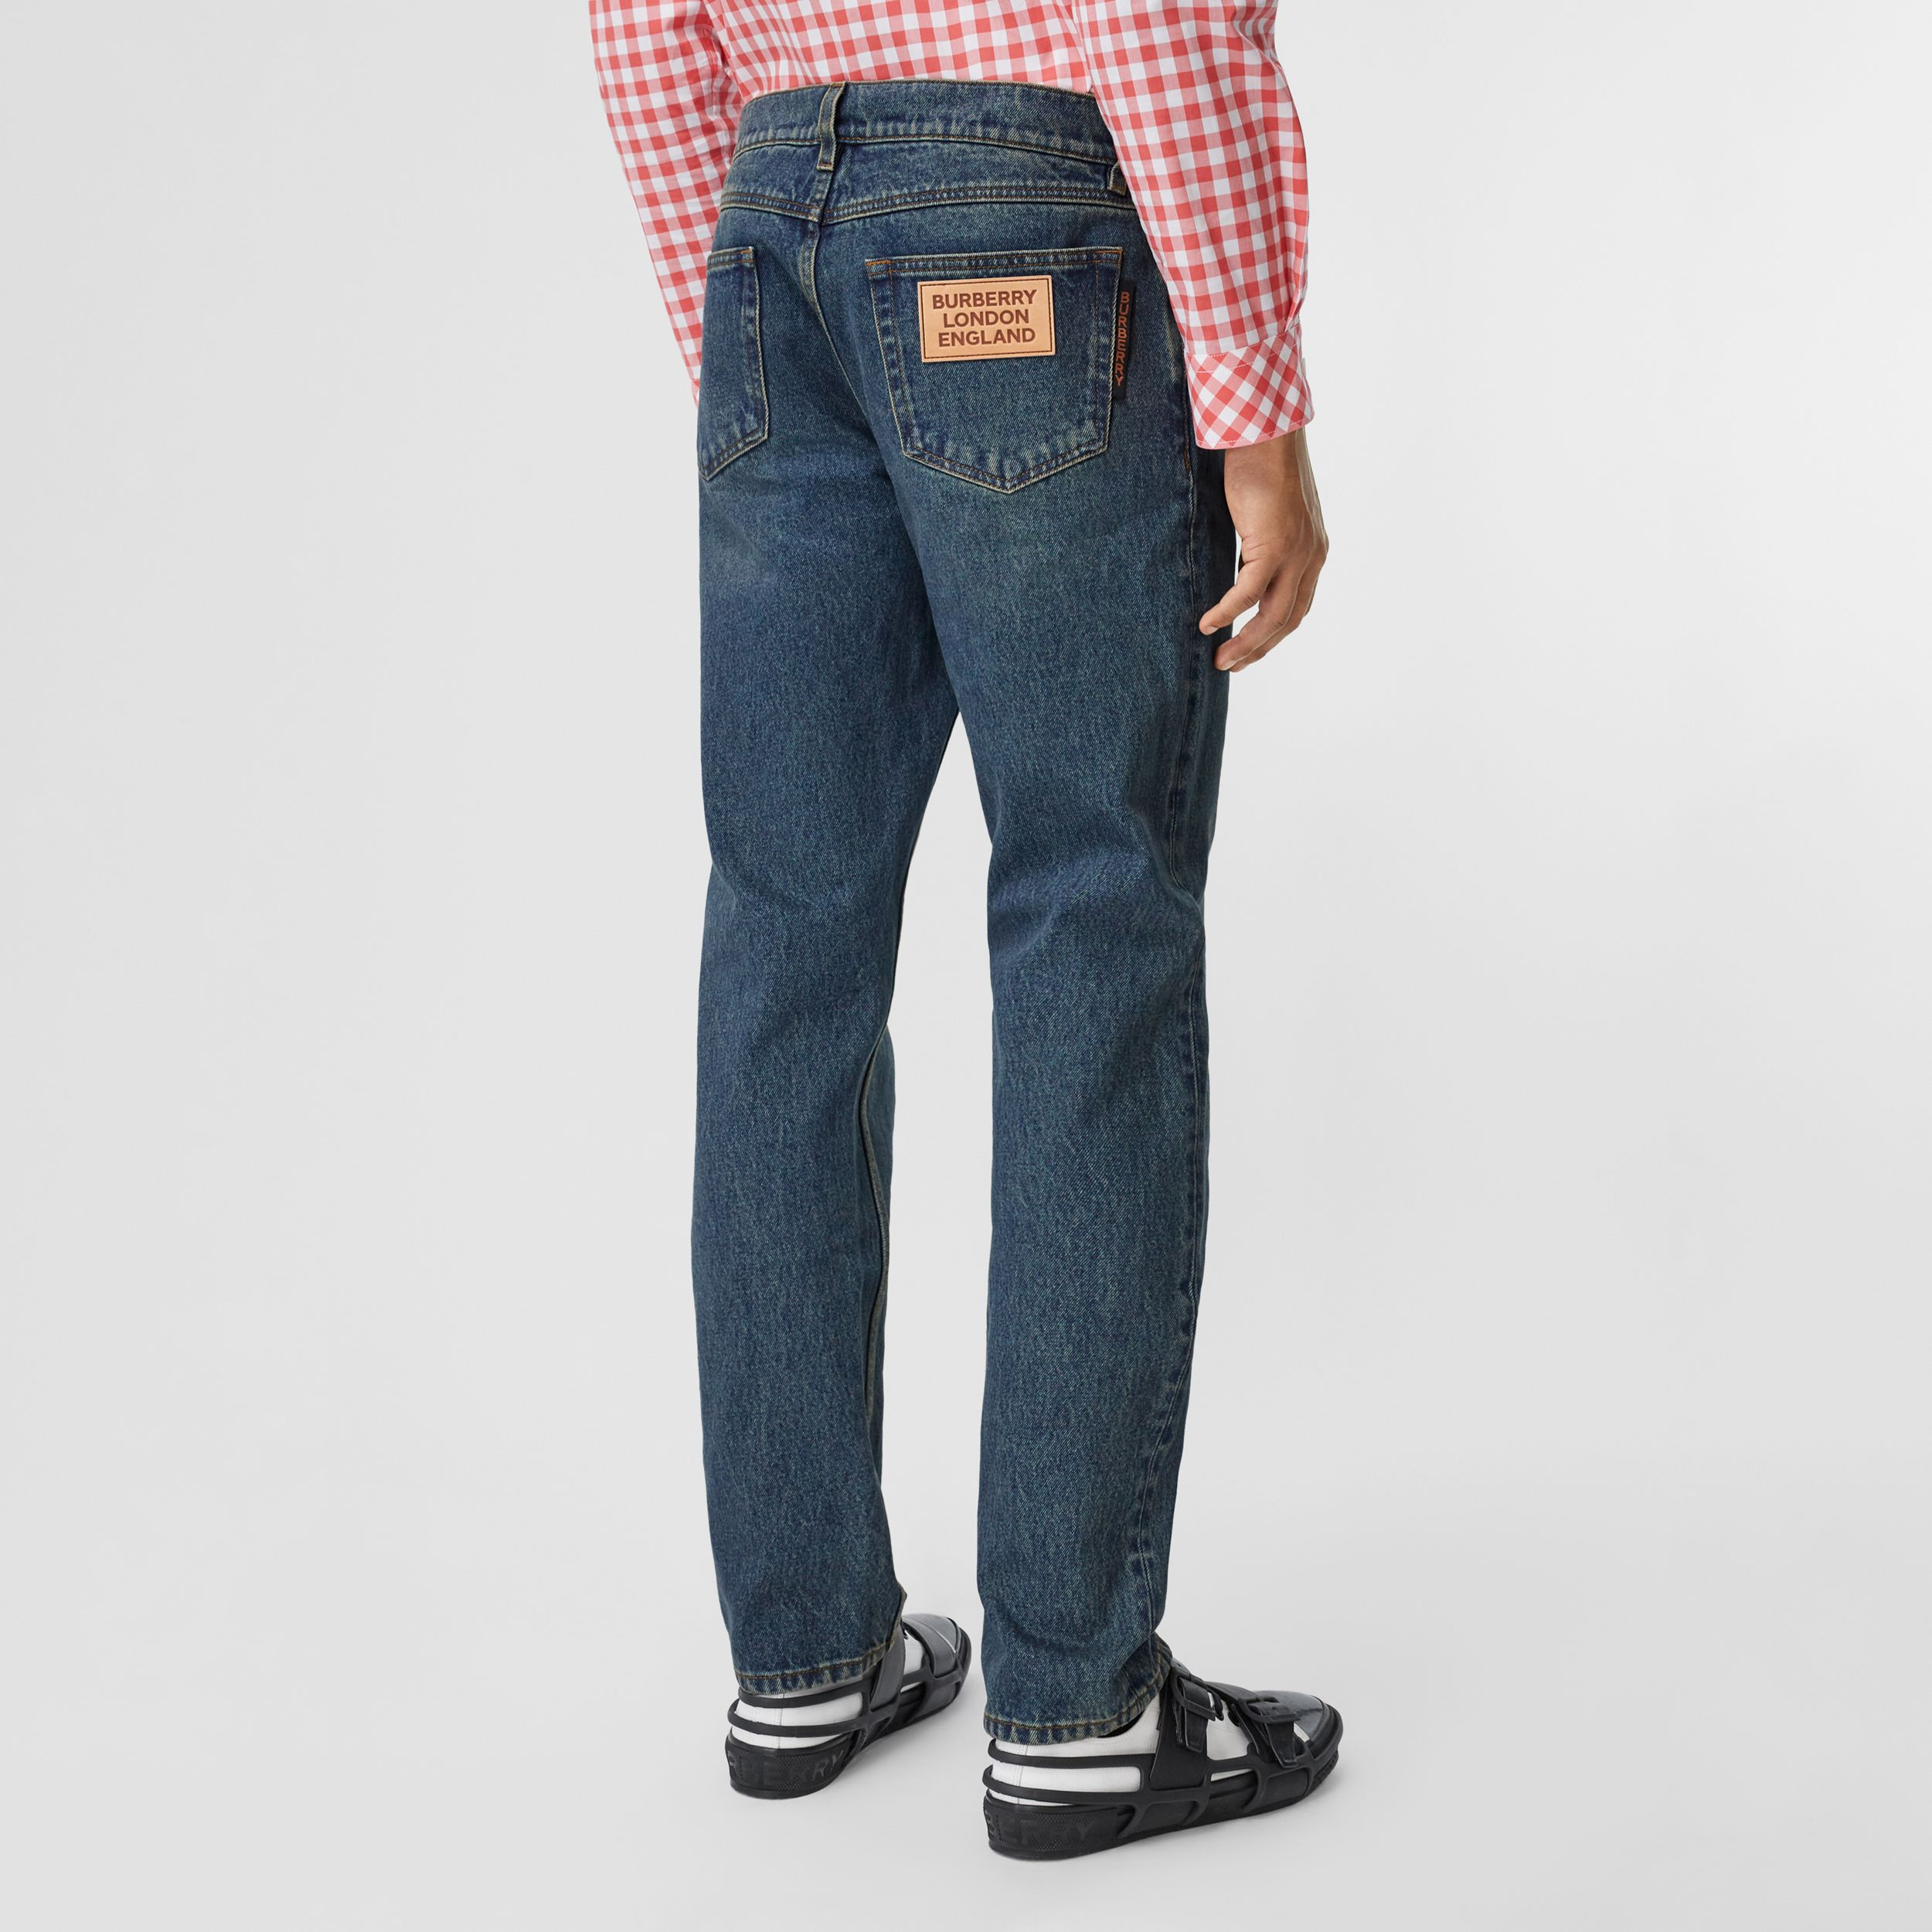 Straight Fit Washed Jeans in Indigo - Men | Burberry - 3